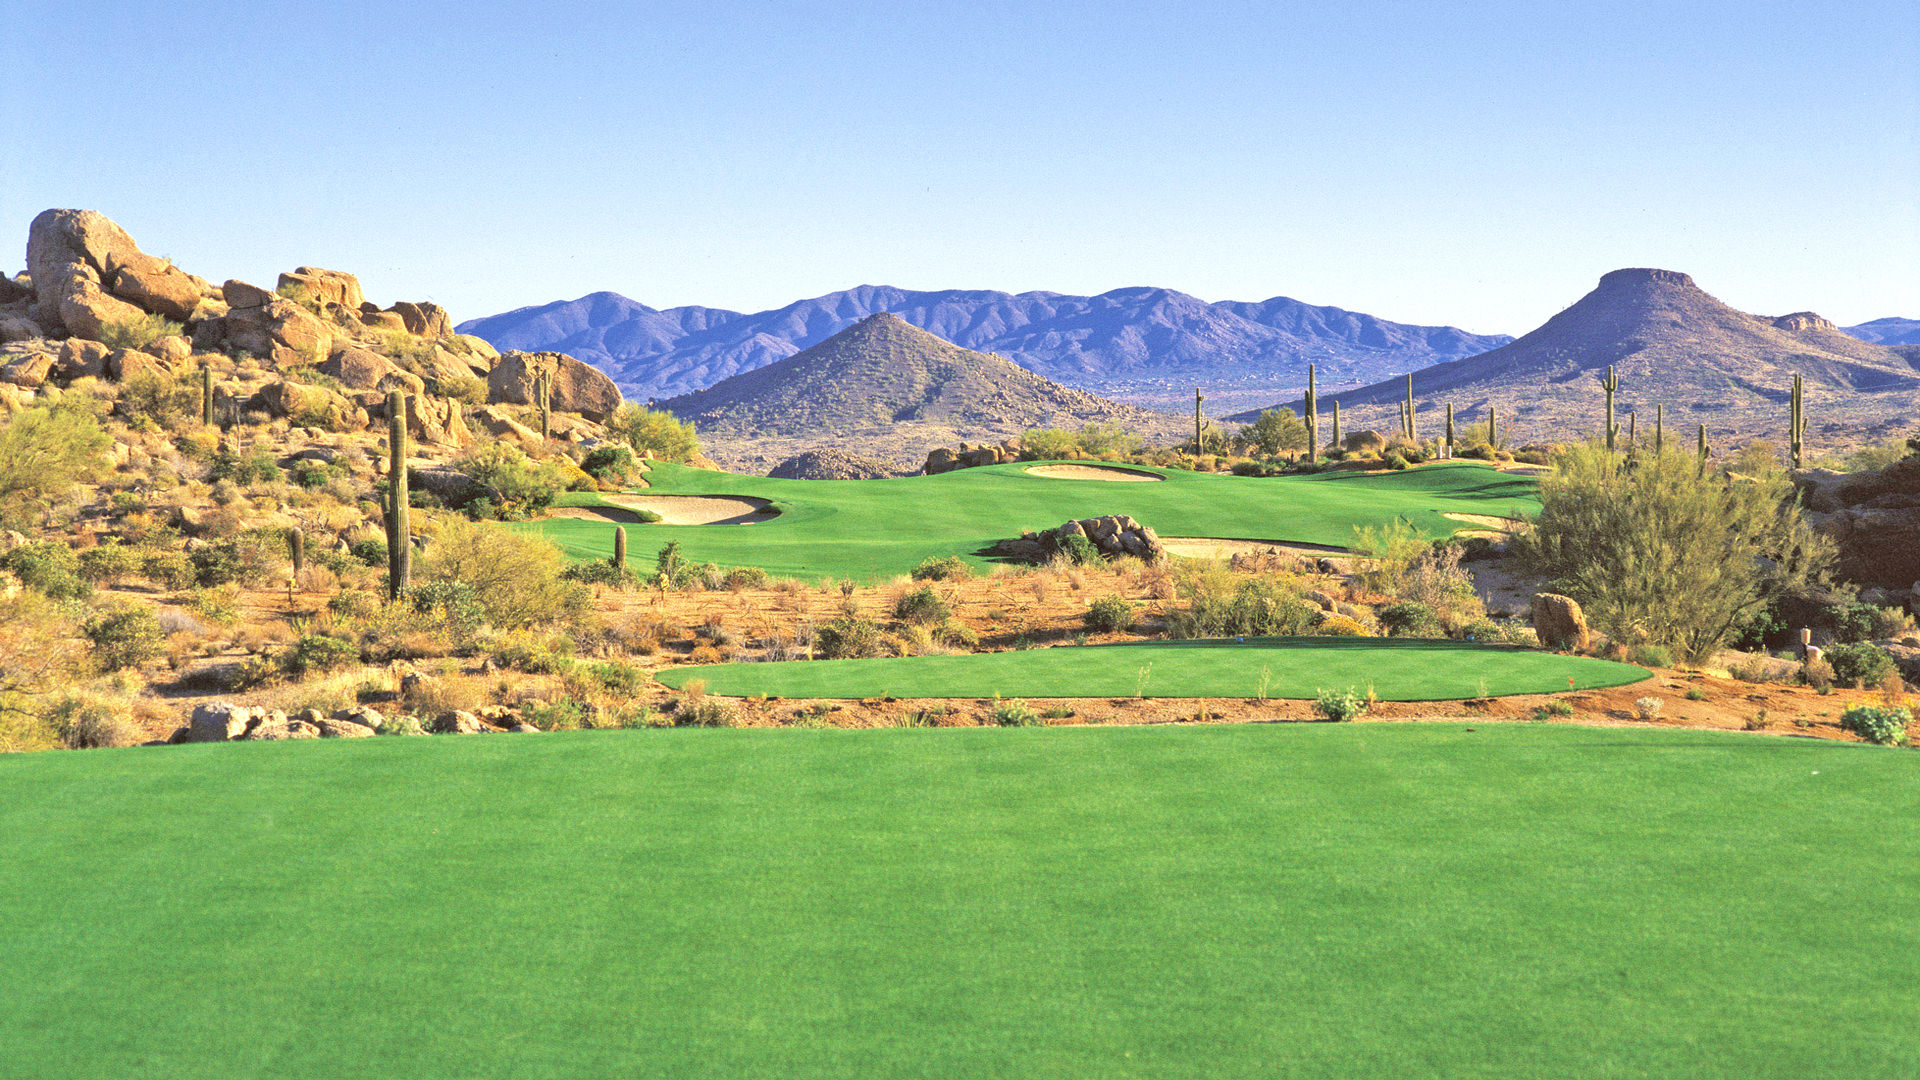 troonnorth - scottsdale